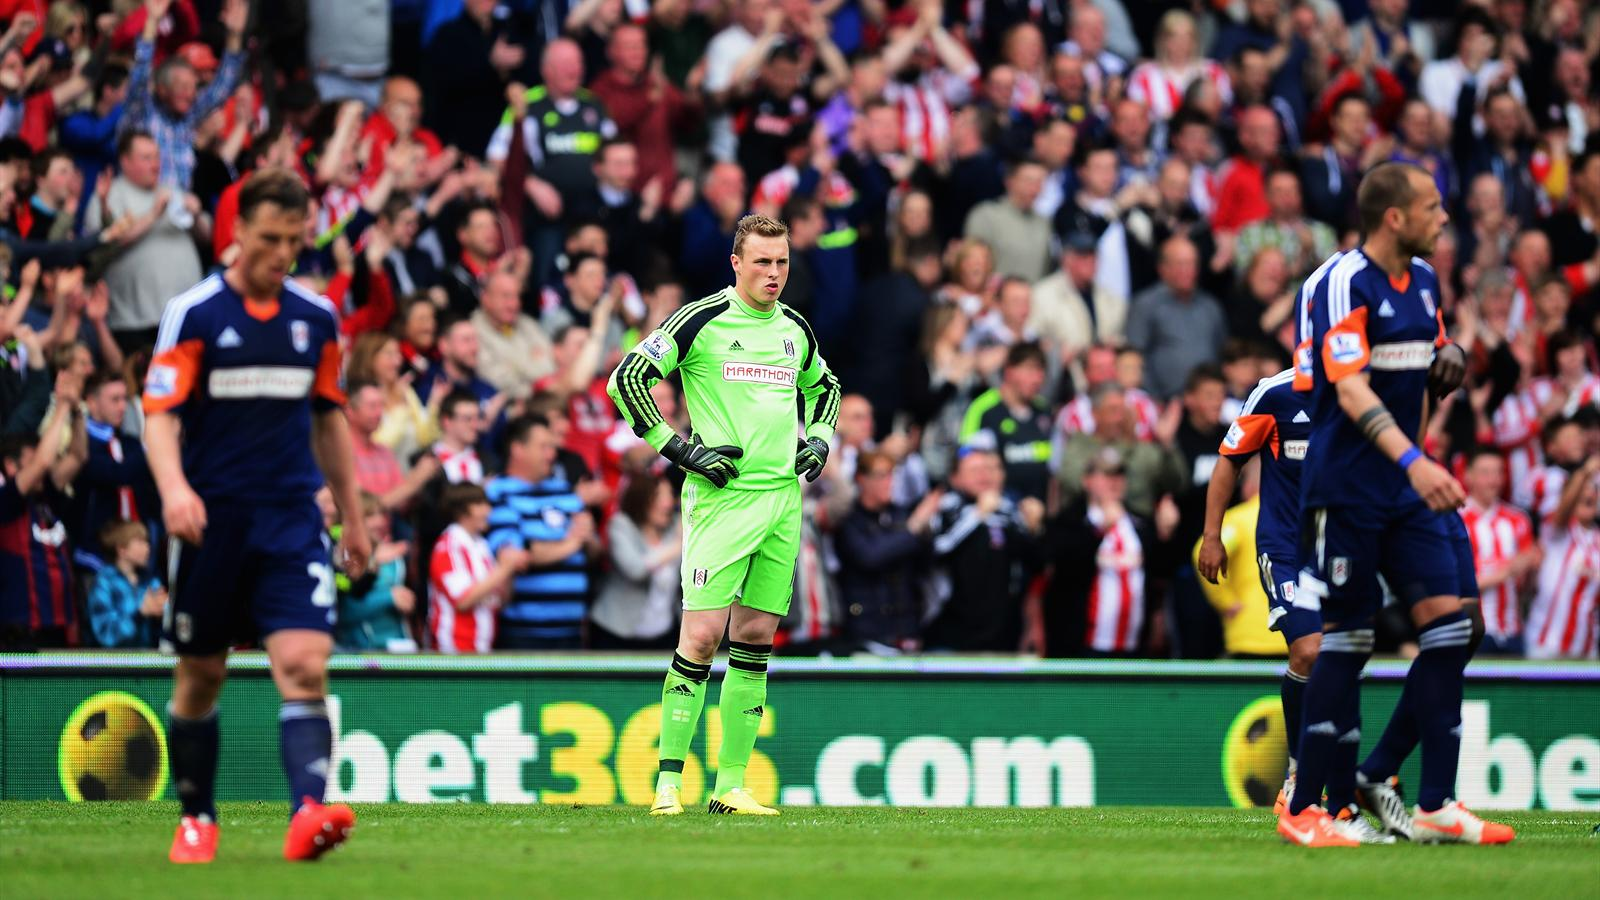 David Stockdale the Fulham goalkeeper reacts after conceding a goal during the Barclays Premier League match between Stoke City and Fulham at the Britannia Stadium